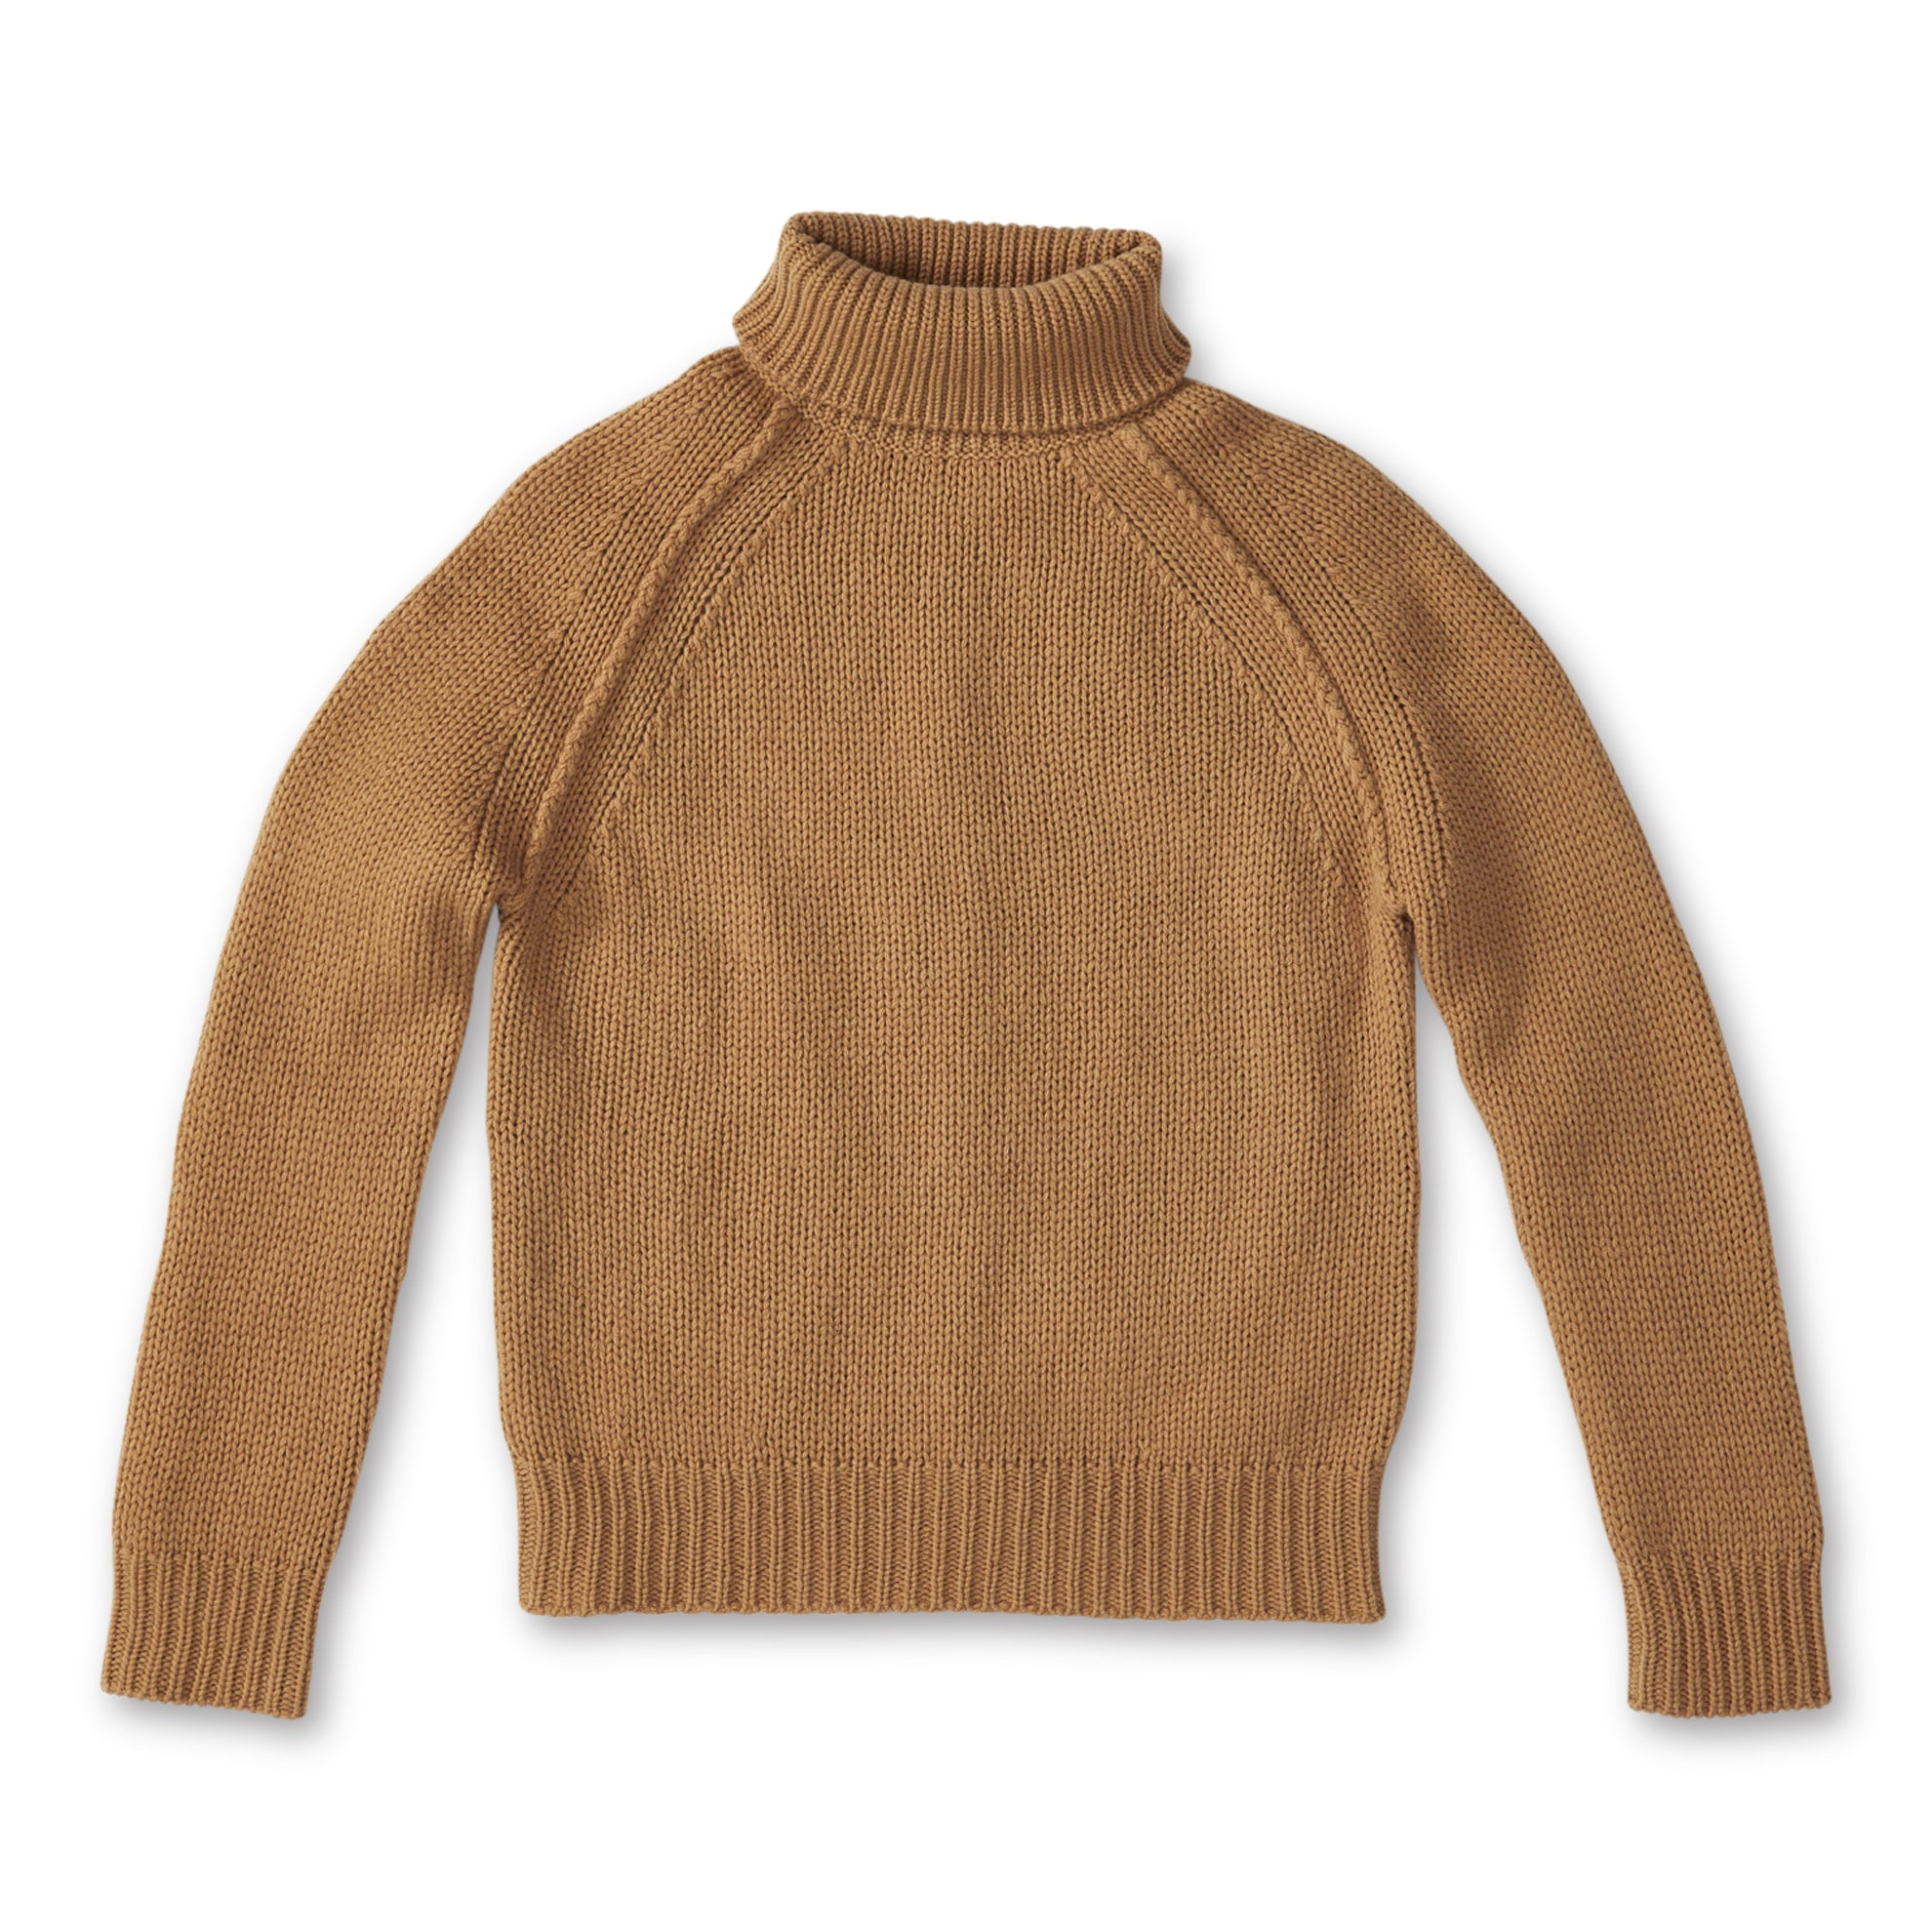 The Library Sweater